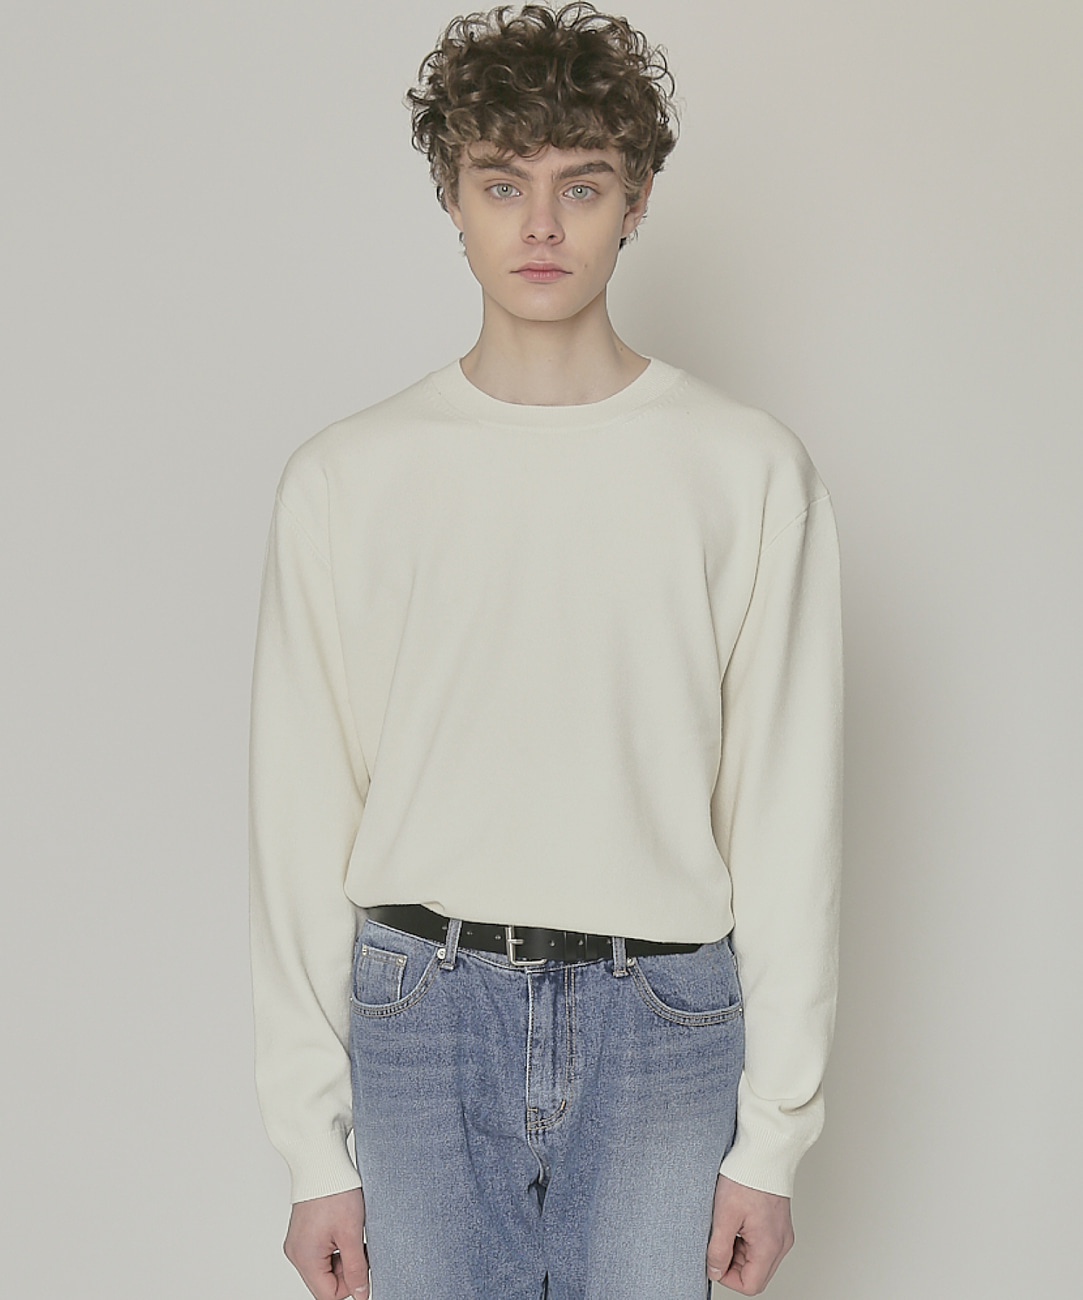 DWS SOFT BASIC ROUND SWEATER(IVORY)